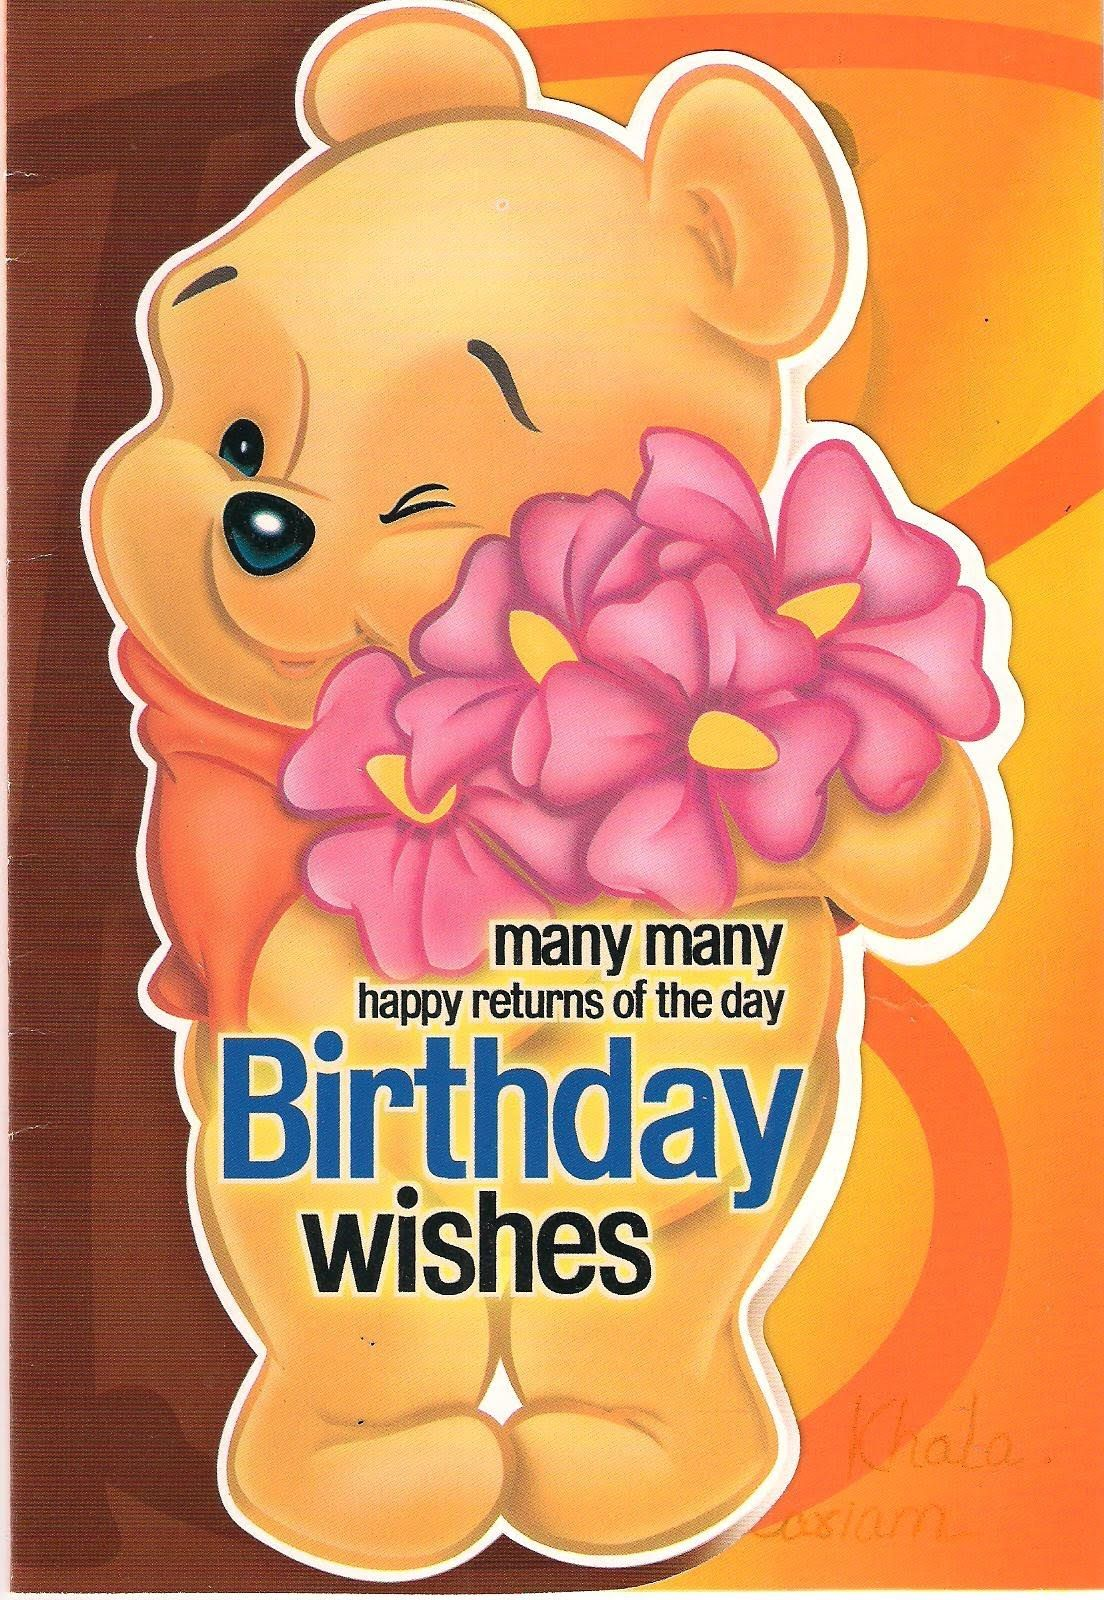 Cute Teddy Bear Happy Birthday Friend Friends Forever Wishes Lovely Wish A